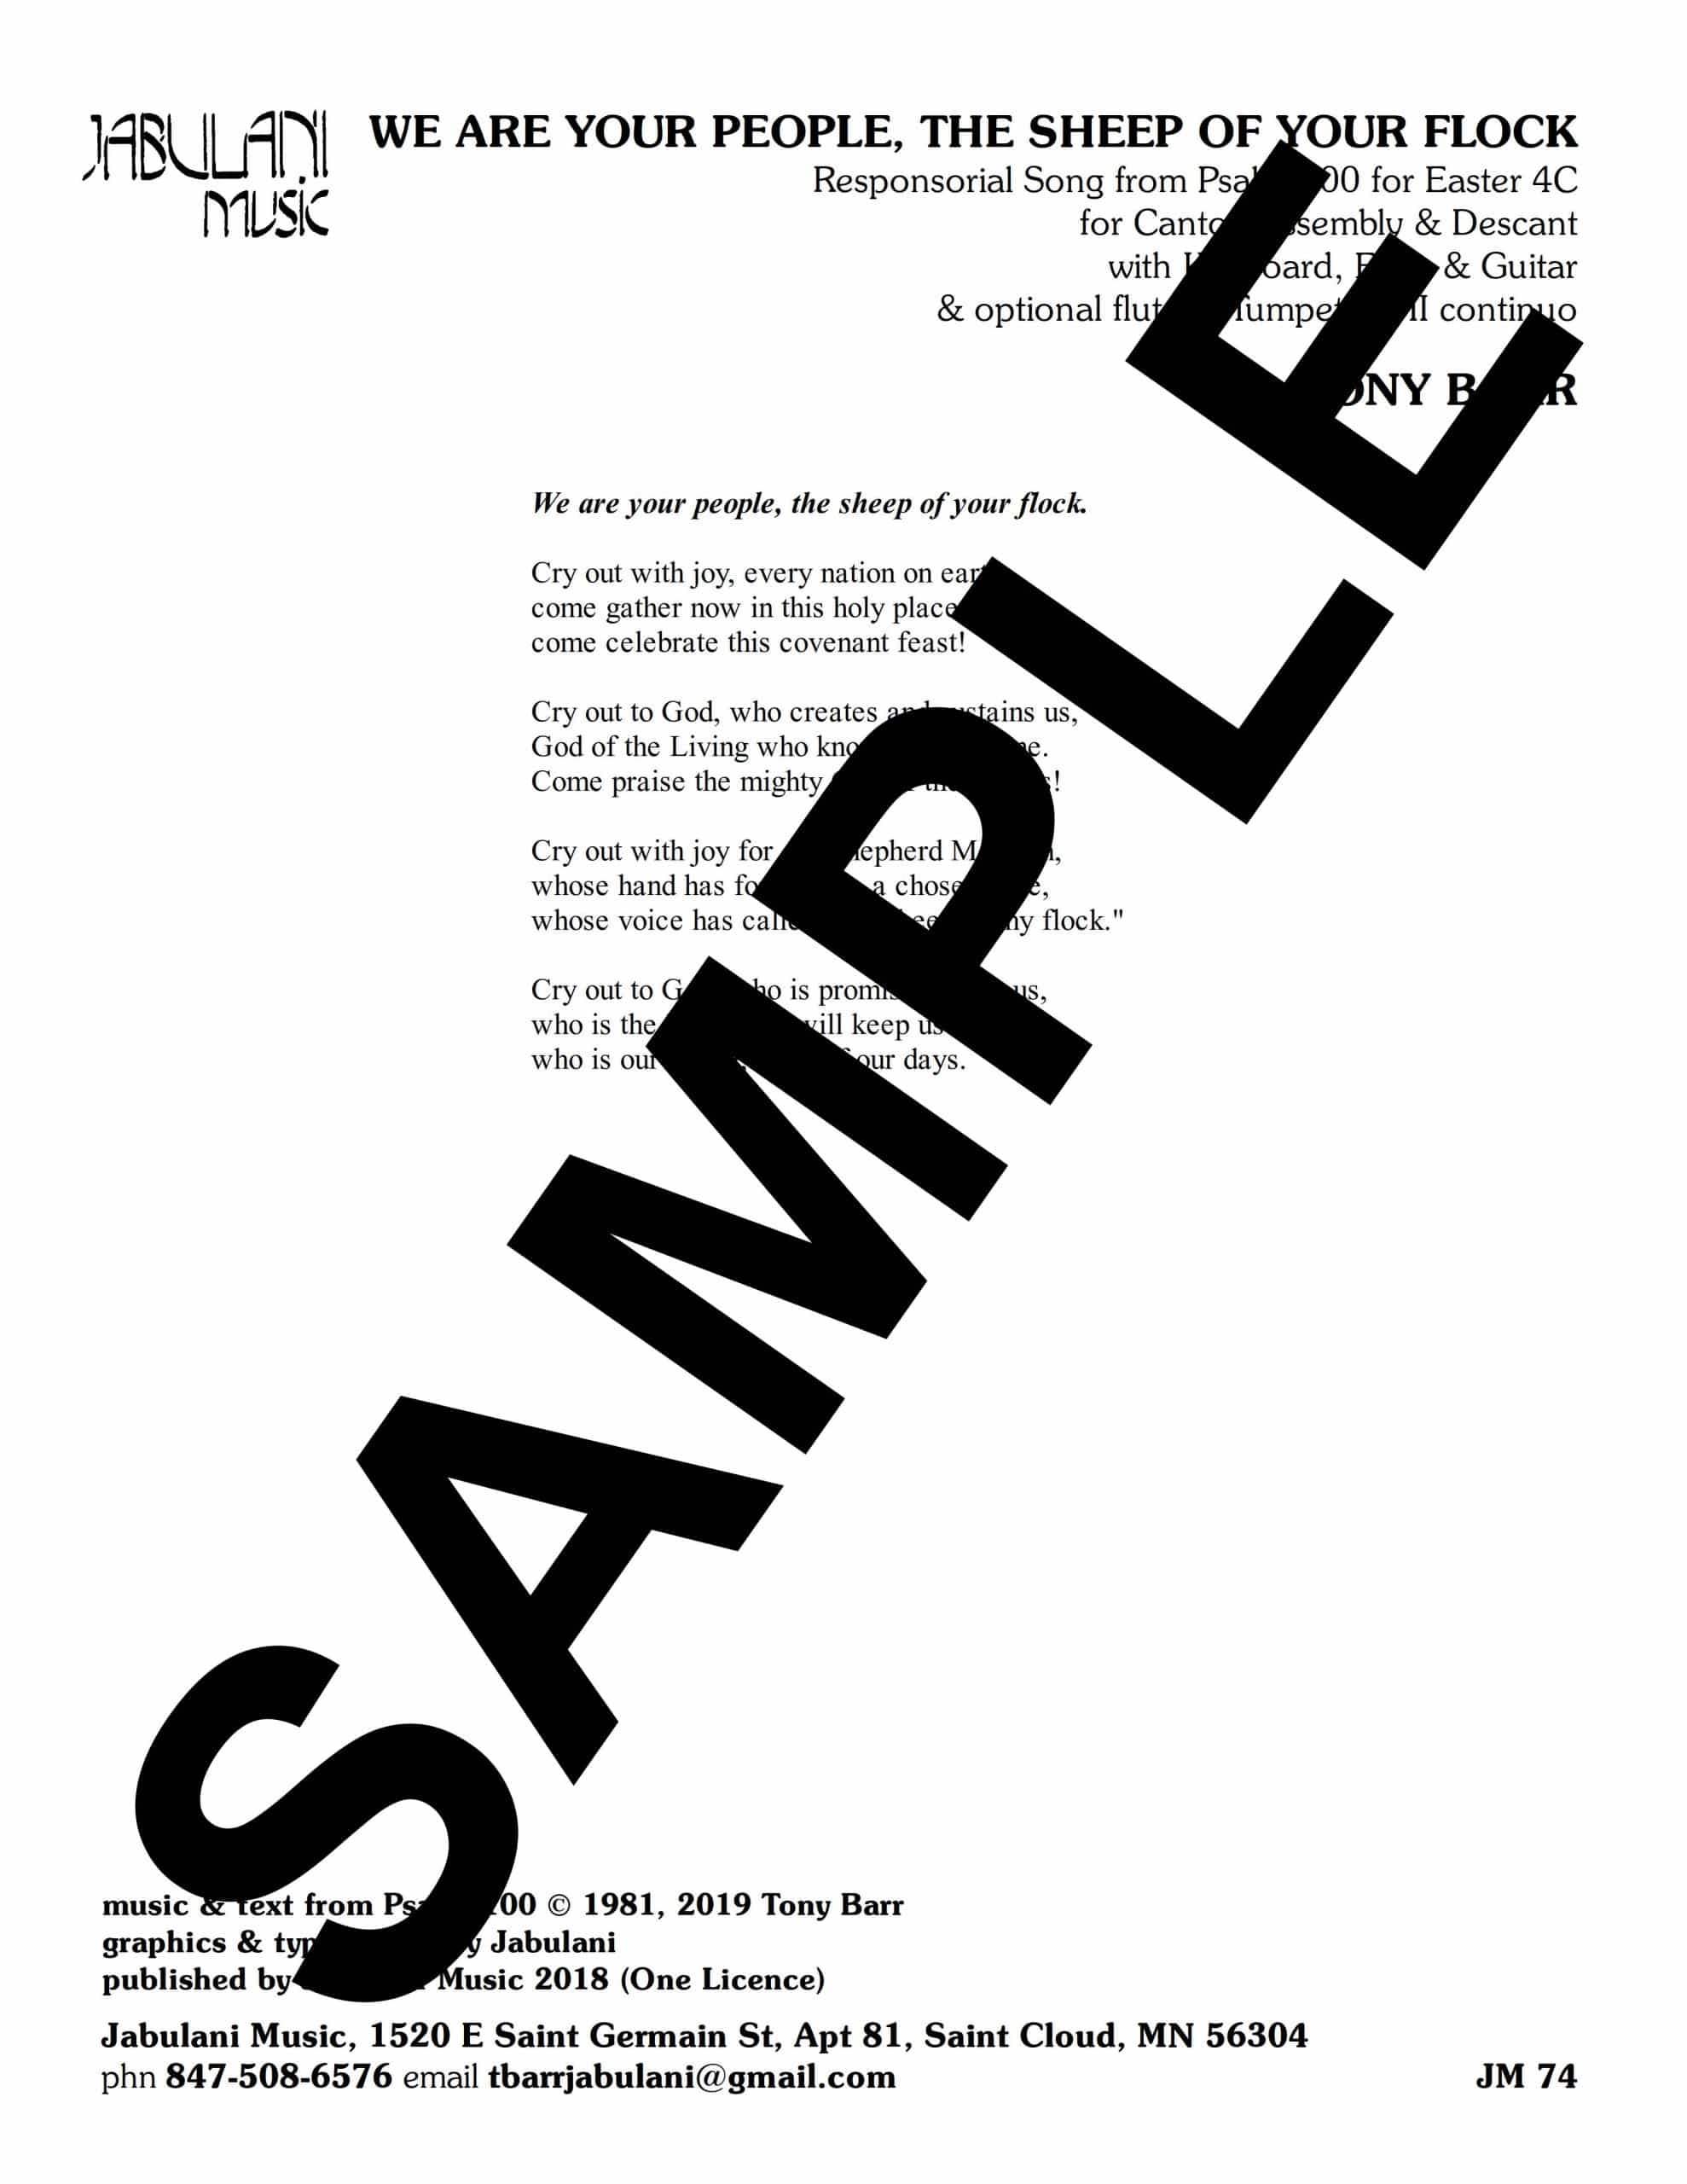 04 Ps 100 We Are Your People The Sheep Of Your Flock jm 74Sample scaled